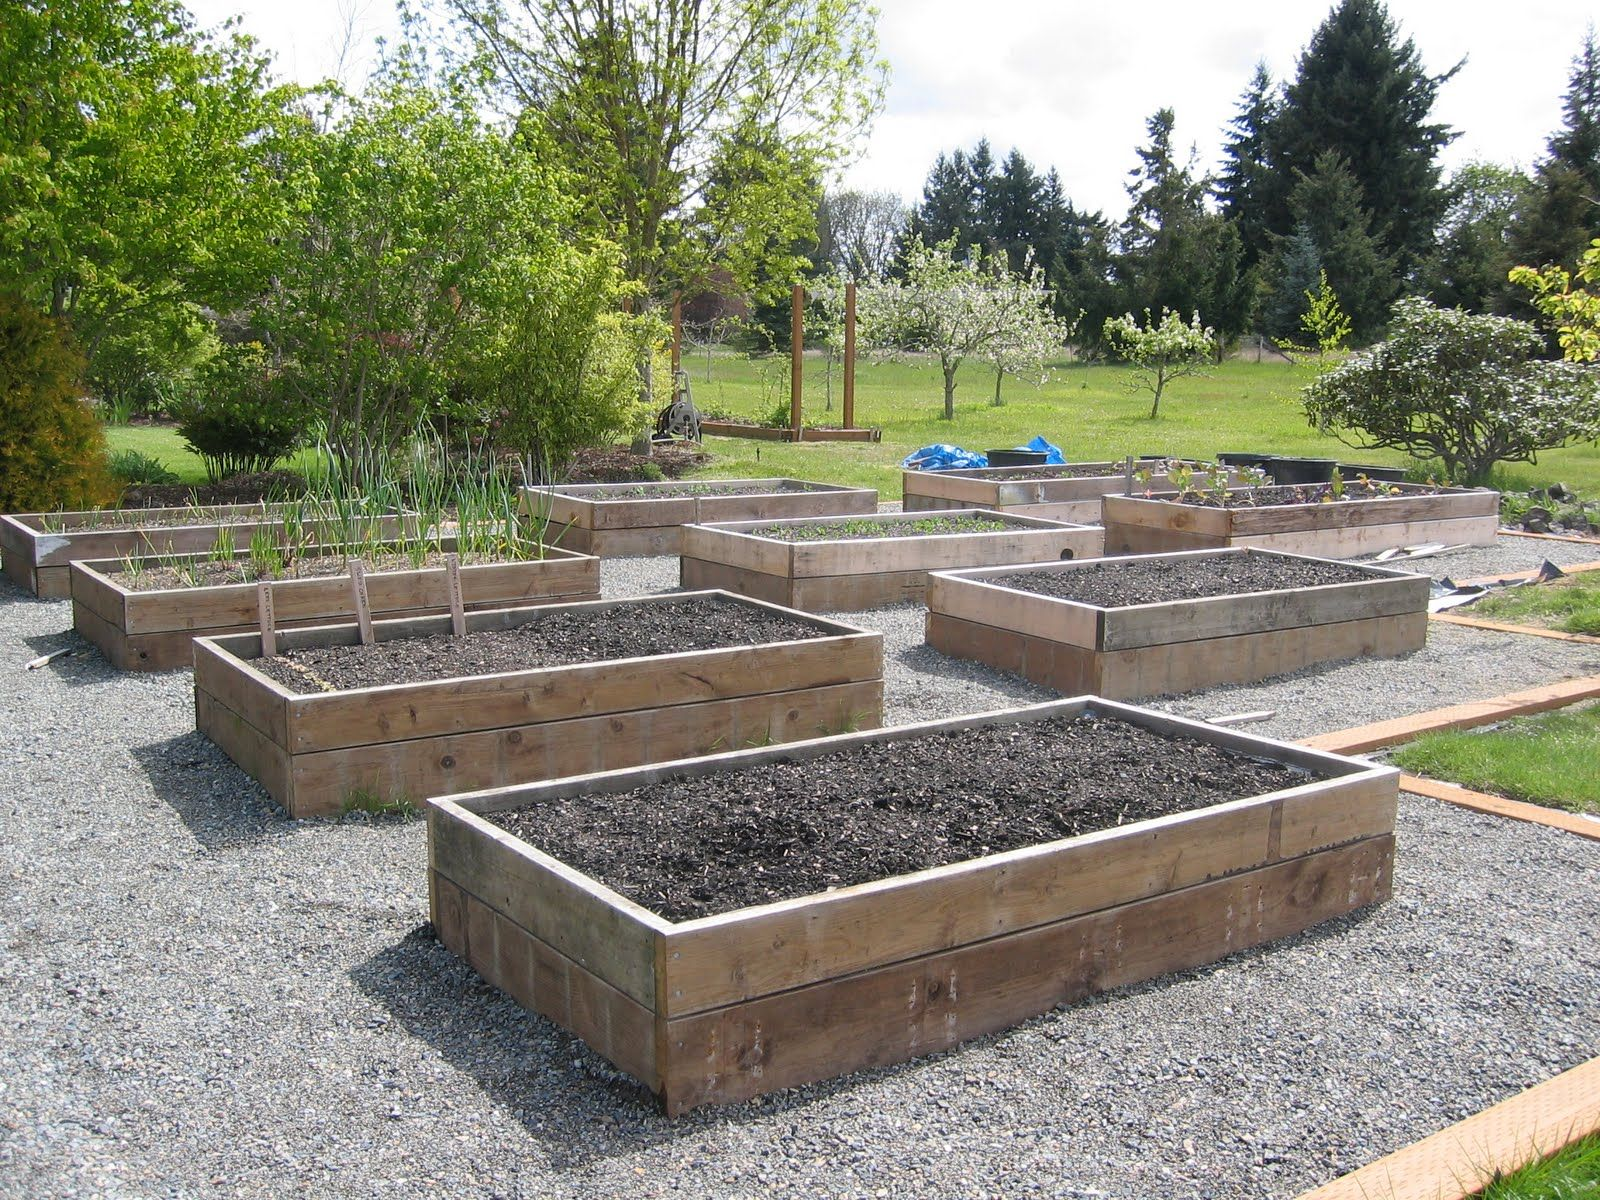 Beautiful Raised Garden Ideas 3 Raised Bed Vegetable Garden Plan 220 Veggie Garden